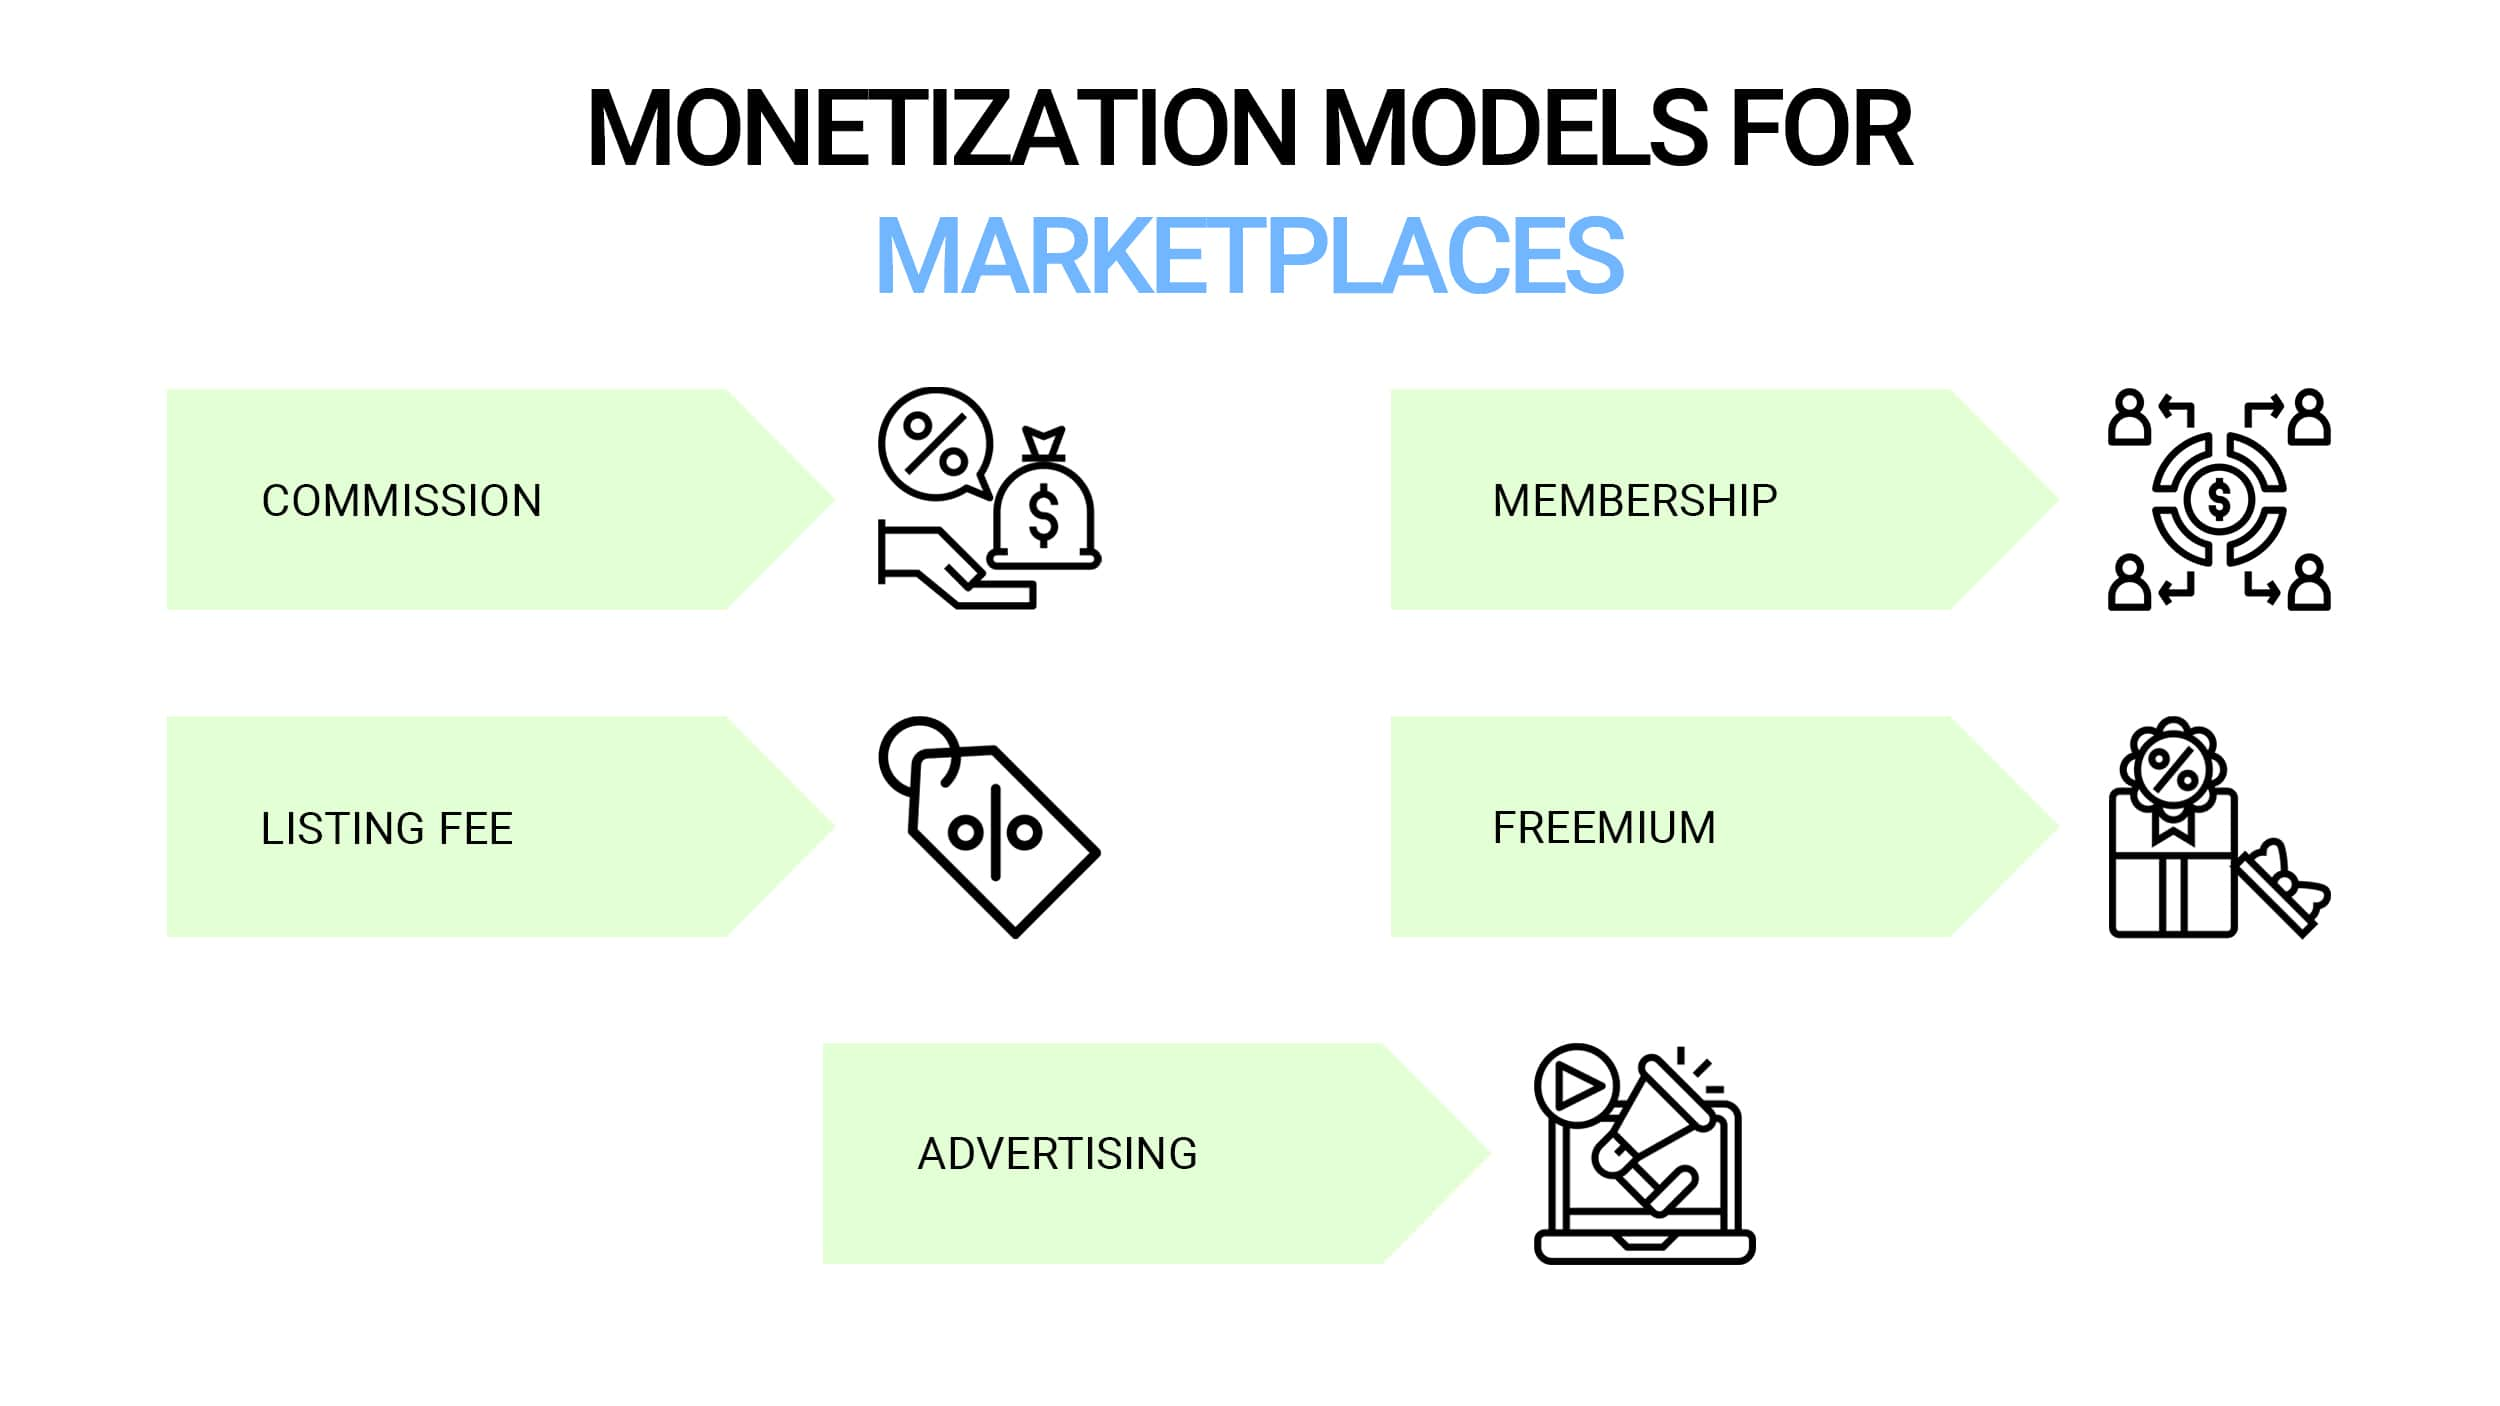 Monetization models for marketplaces